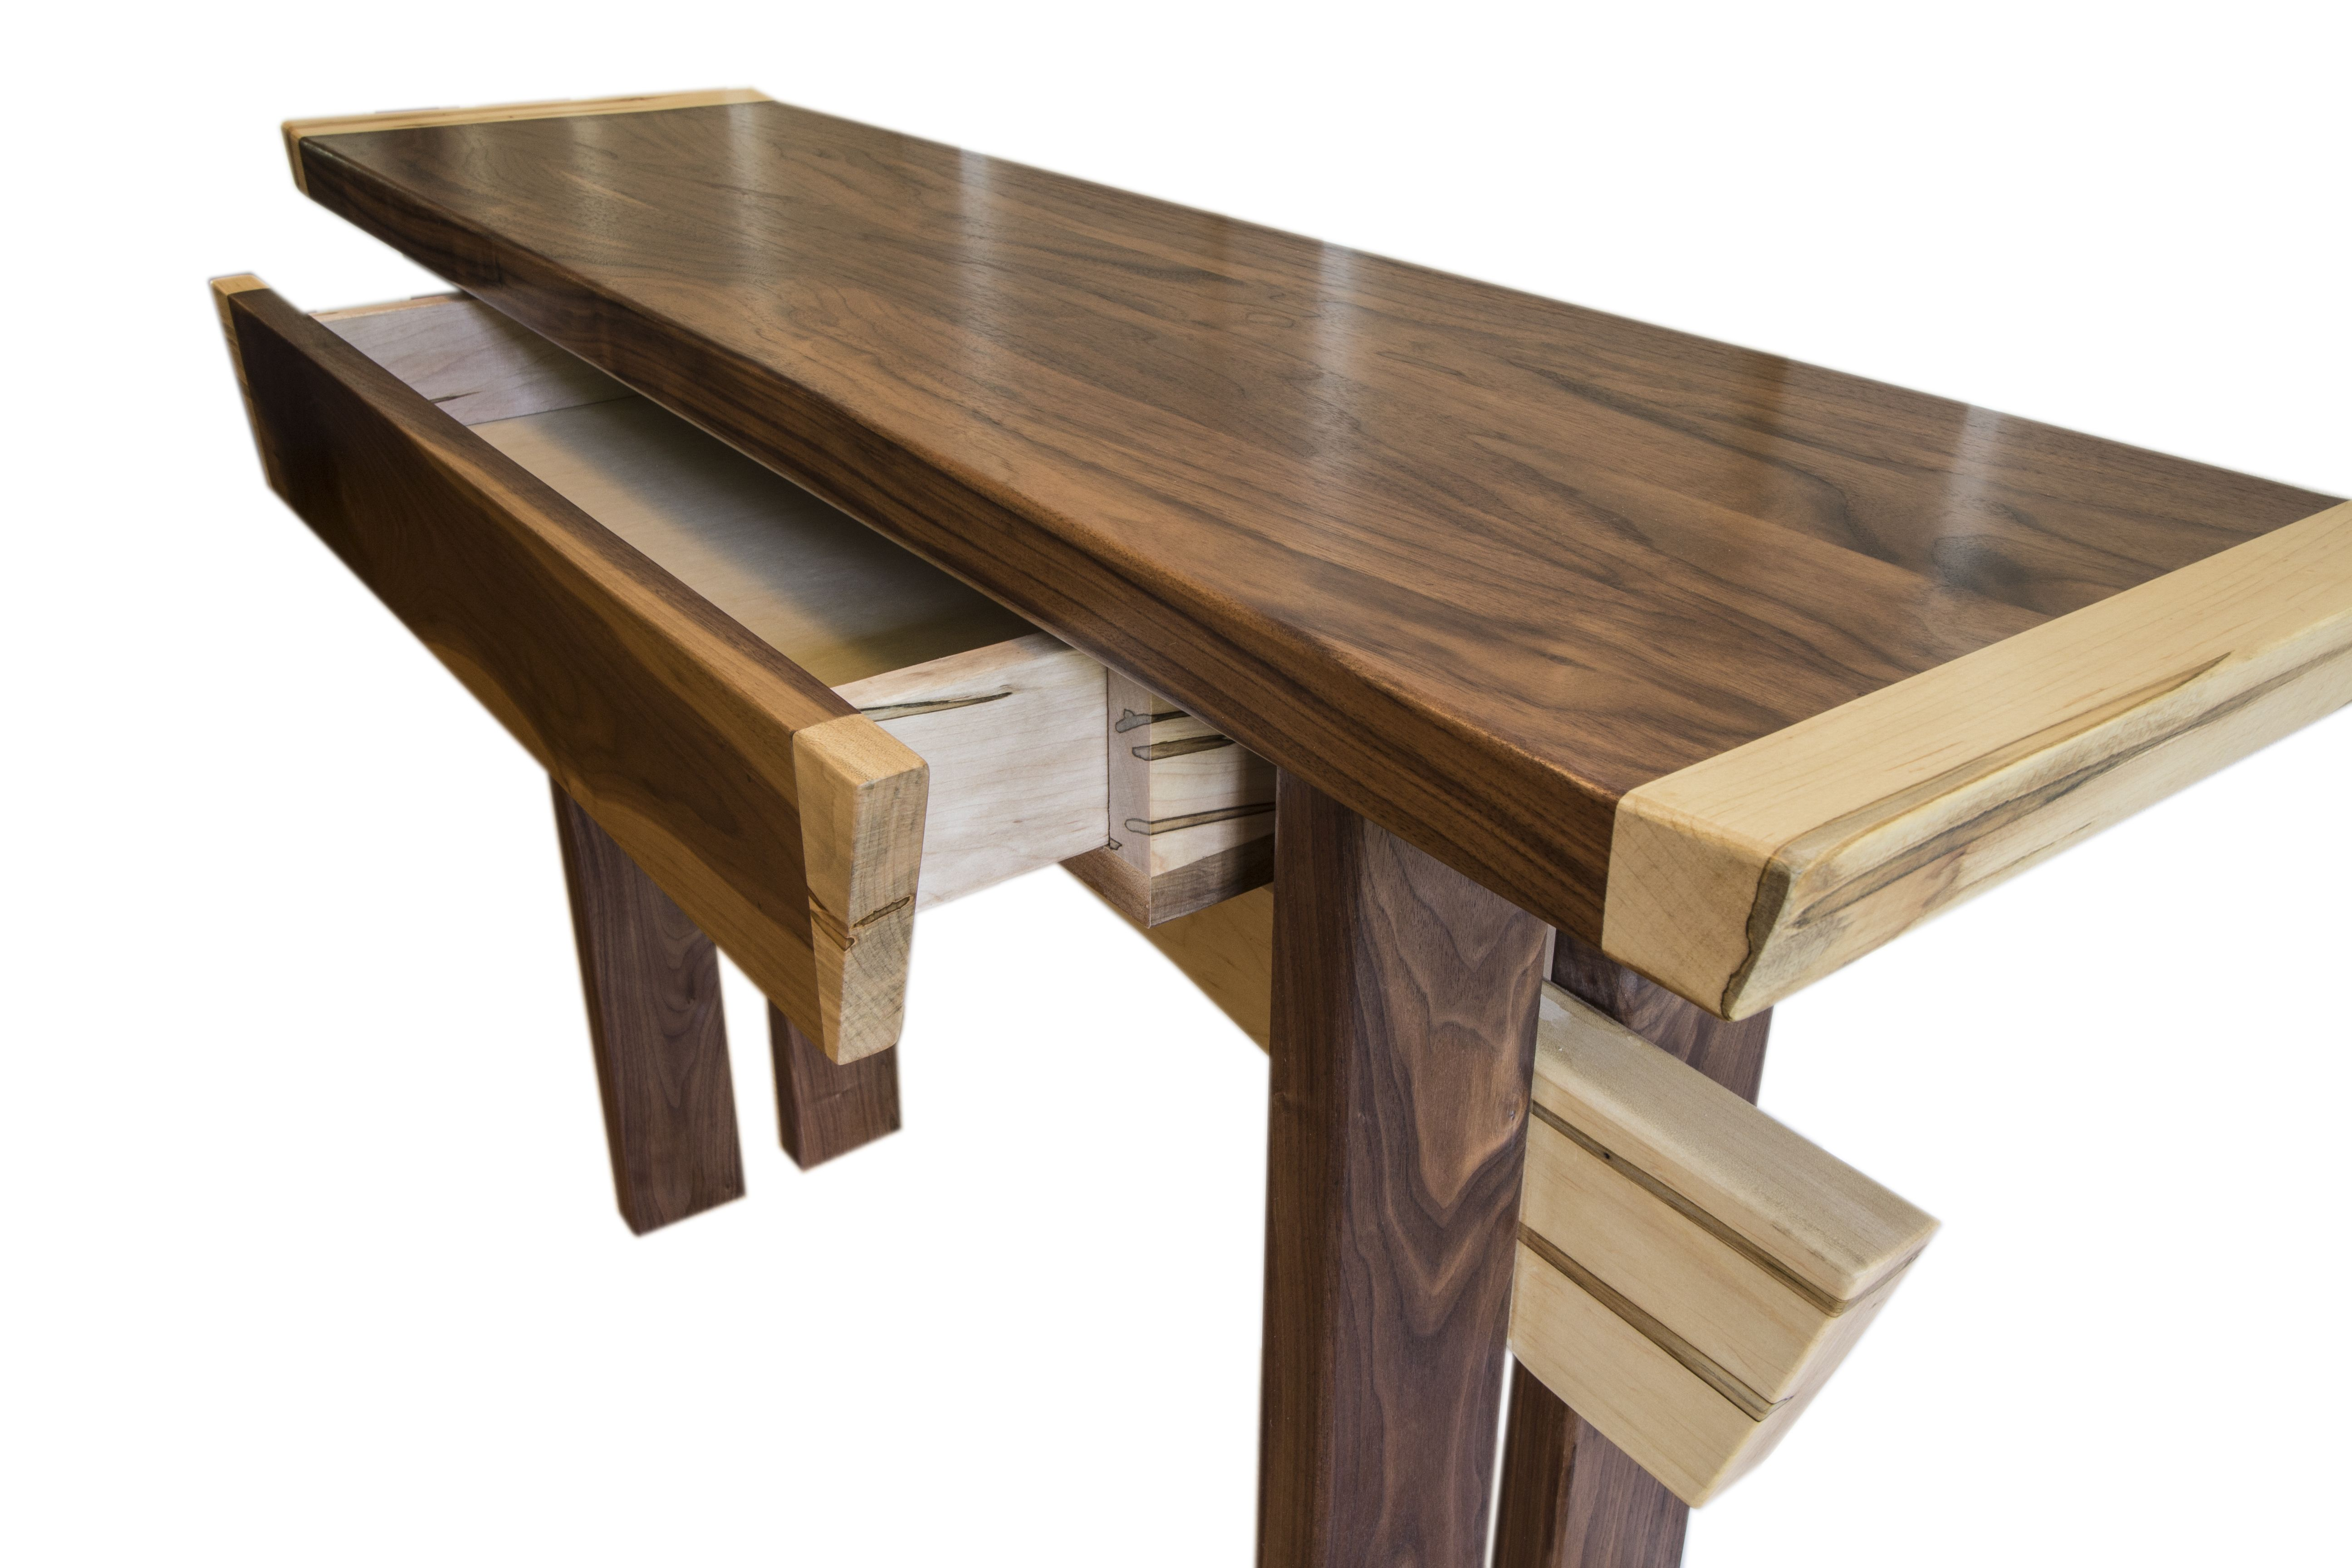 Buy a Hand Crafted Asian Inspired Maple And Walnut Entry Table